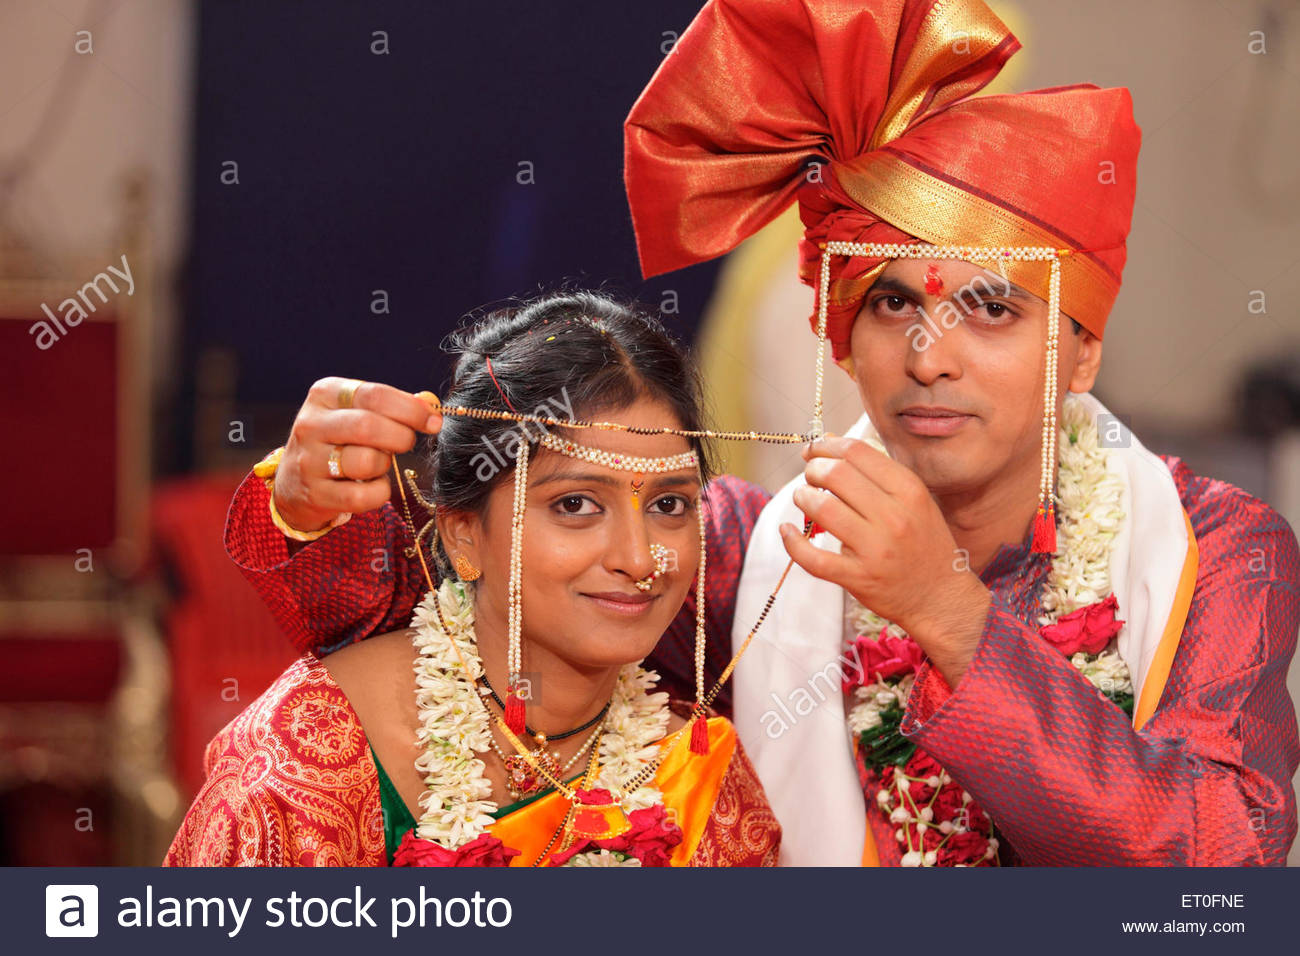 Indian Hindu Wedding Ceremony Bridegroom Holding Mangalsutra Infront Of Bride Bombay Mumbai